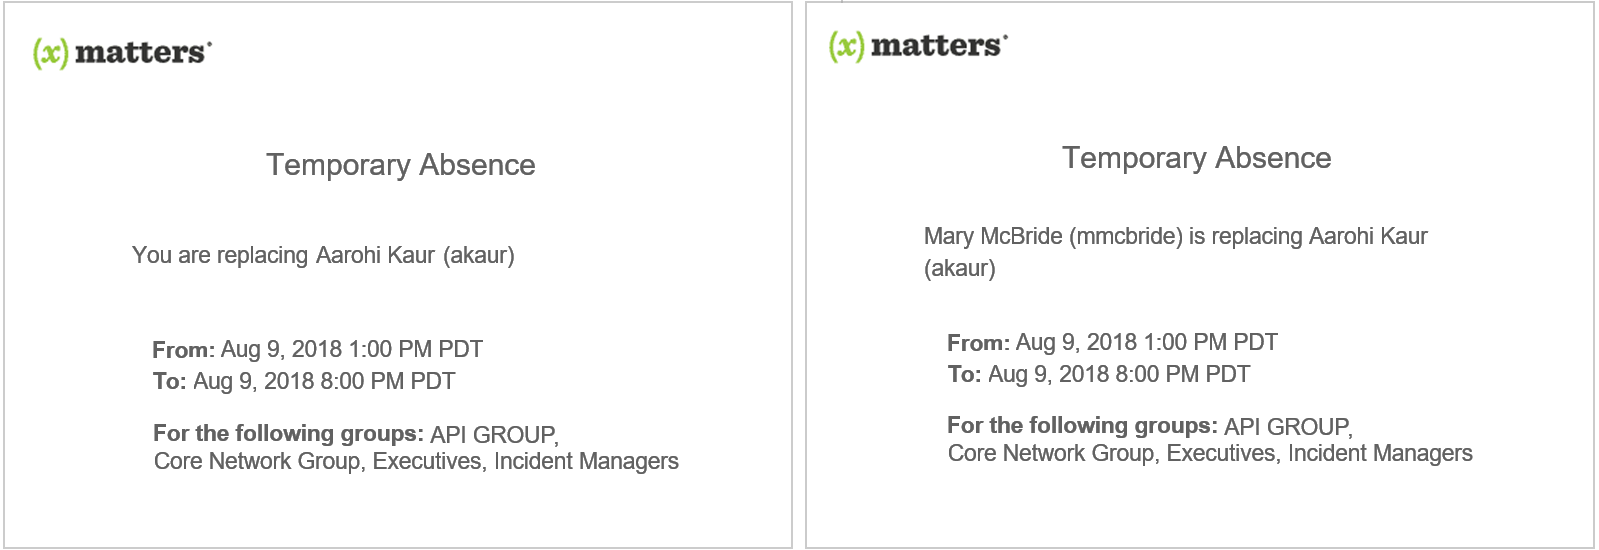 temporary-absence-emails-groups.png